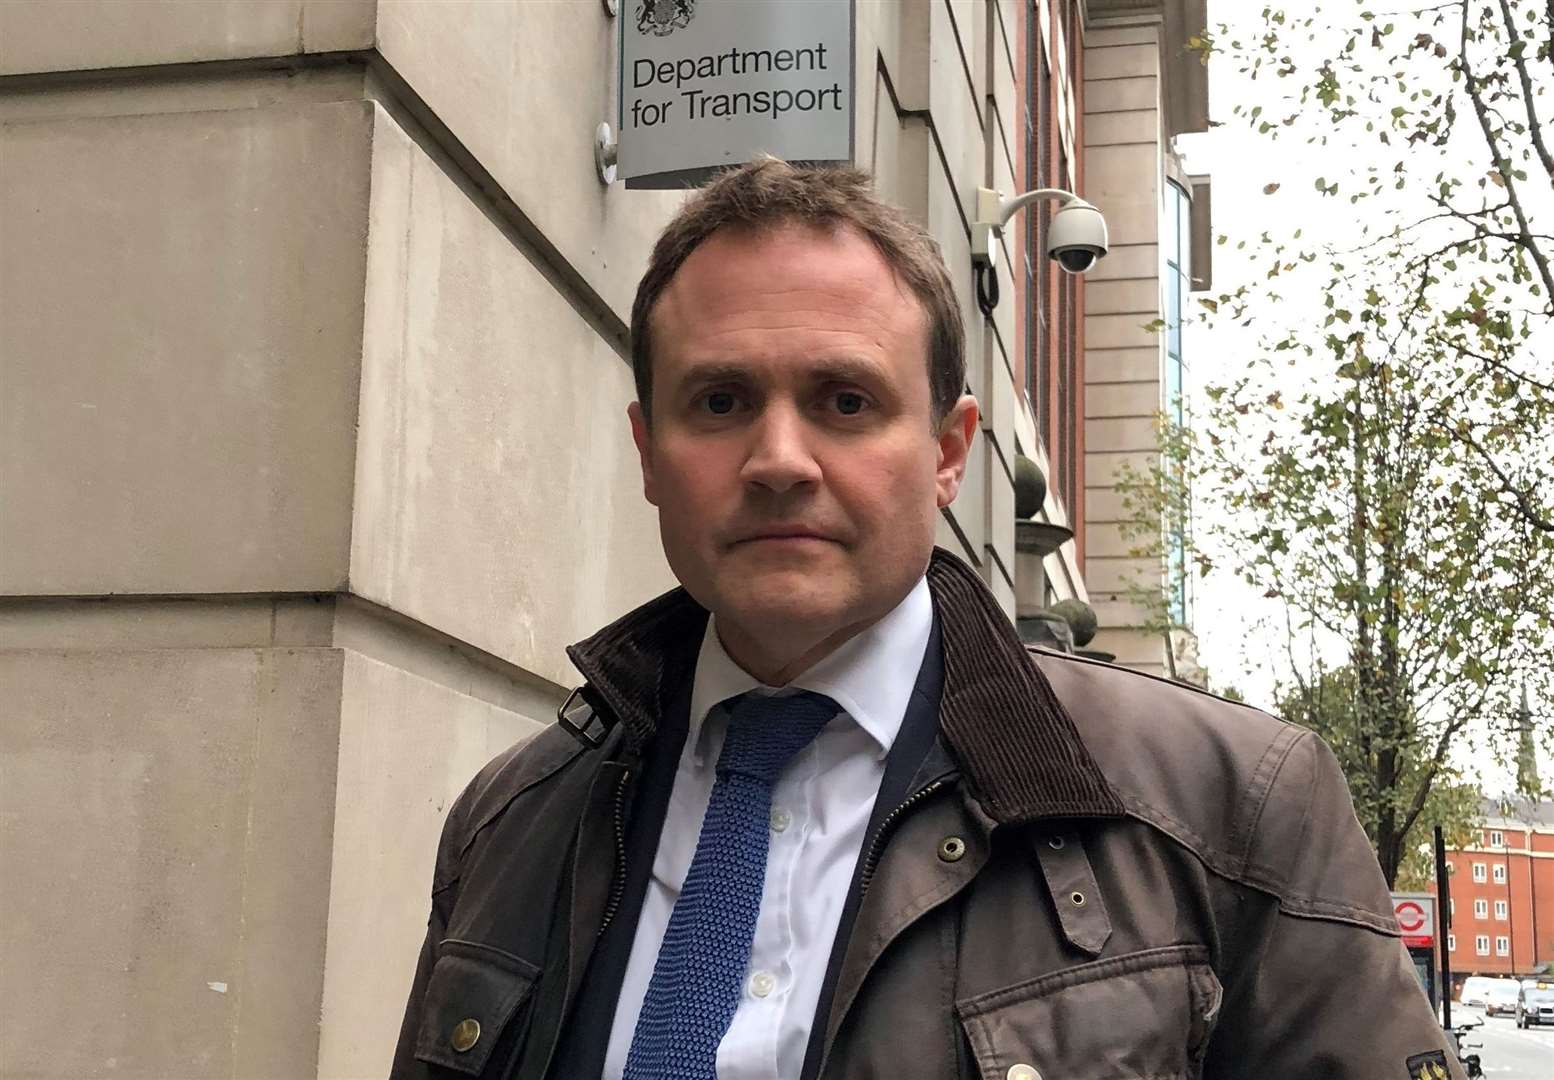 Tonbridge and Malling MP Tom Tugendhat put the request to the Rail Minister today